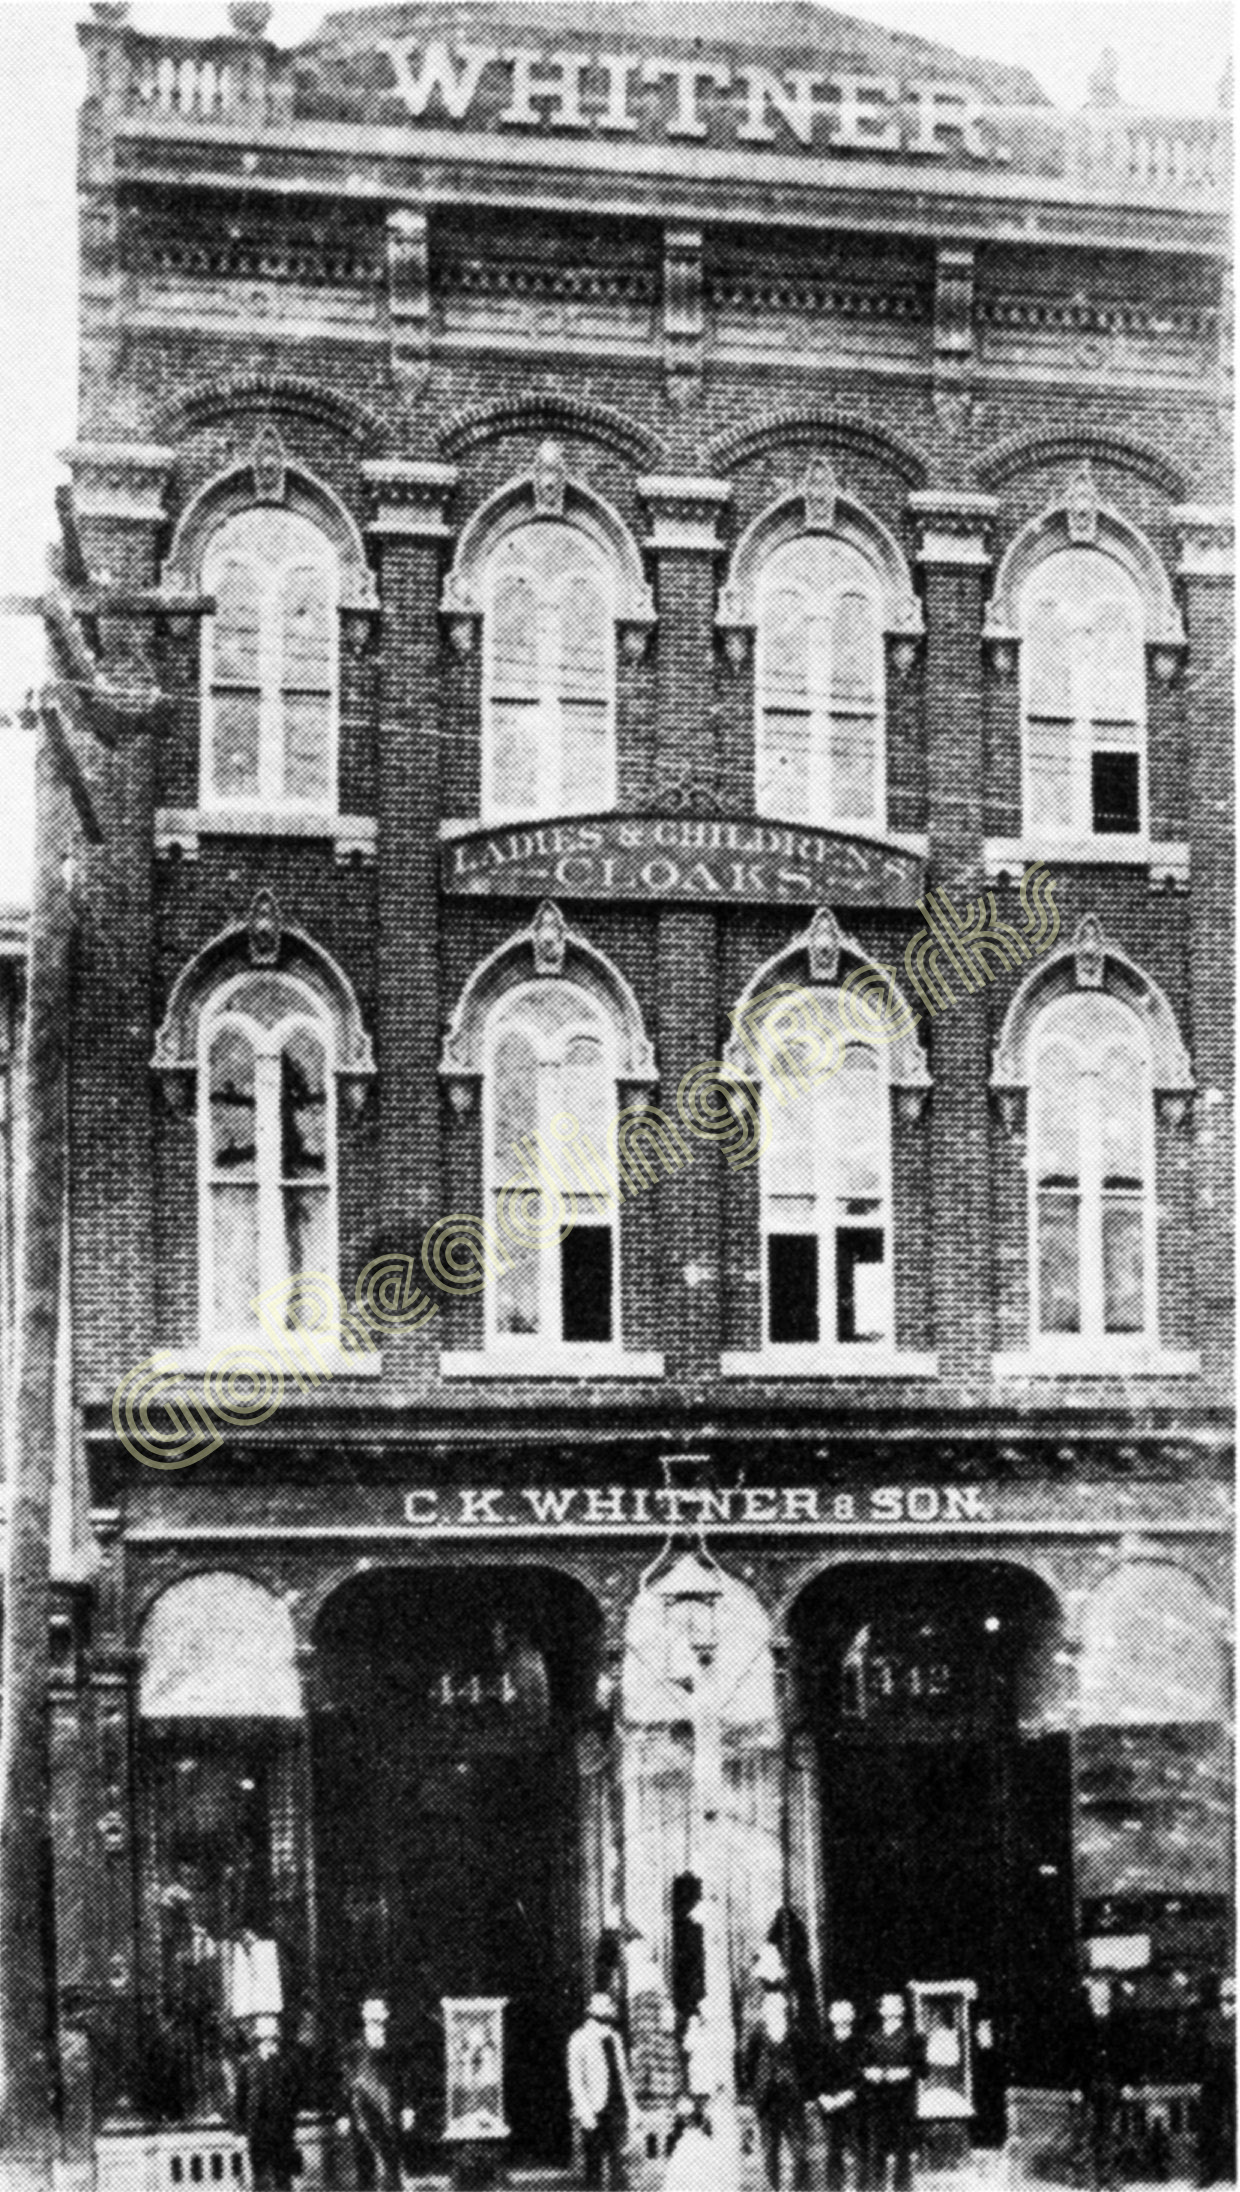 "Like the predecessors of many other Penn street establishments, Mr. Whitner's first store was confined entirely to the first floor of a converted dwelling. It handled a line of dry goods and notions. All the selling space was on the first floor while a portion of the basement and second floor were used for receiving rooms and storage. The room available for selling space was typical of the first floor facilities of any large dwelling in those days. It contained less than 2,000 square feet in a room of about 20 by 90 feet. A newspaper description gives the following account of store's opening: ""Mr. Calvin K. Whitner will open today at 432 Penn street, a new dry goods store, with an entire new stock. Mr. Whitner is one of our most careful and energetic businessmen, and having had long experience, will be able to conduct his establishment on first-class principles. The opening today, it is expected, will be largely attended by the ladies of this city, to whom every facility will be extended for a thorough examination of the stock."" As recorded in Whitner's ledger, first-day sales total $159. Each day the volume grew and at the end of the first year he was able to report that his total sales had aggregated slightly less than $37,000. It was only six years after the store was opened that the need for larger quarters was felt. So business and stocks were transferred in 1883 to the buildings at 442-444 Penn Street. The store building at 444 Penn Street had been vacated by Dives, Pomeroy & Stewart. Mr. Whitner conducted the business by himself individually until 1889 when his son, Harry K. Whitner was taken into the firm. The firm traded as C. K. Whitner & Son until the son's death in December, 1890. More departments were added and in 1891 additional expansion was accomplished by extending back to Cherry Street. In 1896, a faithful employee for many years, John A. Britton, was admitted as a partner, and the firm name became C. K. Whitner & Co. One year later, in 1897, rooms at 438 and 440 Penn street were added and in 1899 more space toward Cherry Street was utilized. The department store continued to expand and, by 1910, a four-story main building stood on Penn Street, with a five-story structure in the rear on Cherry Street. At the completion of the expansion and modernization more than 60,000 square feet of floor space was available, including warerooms."